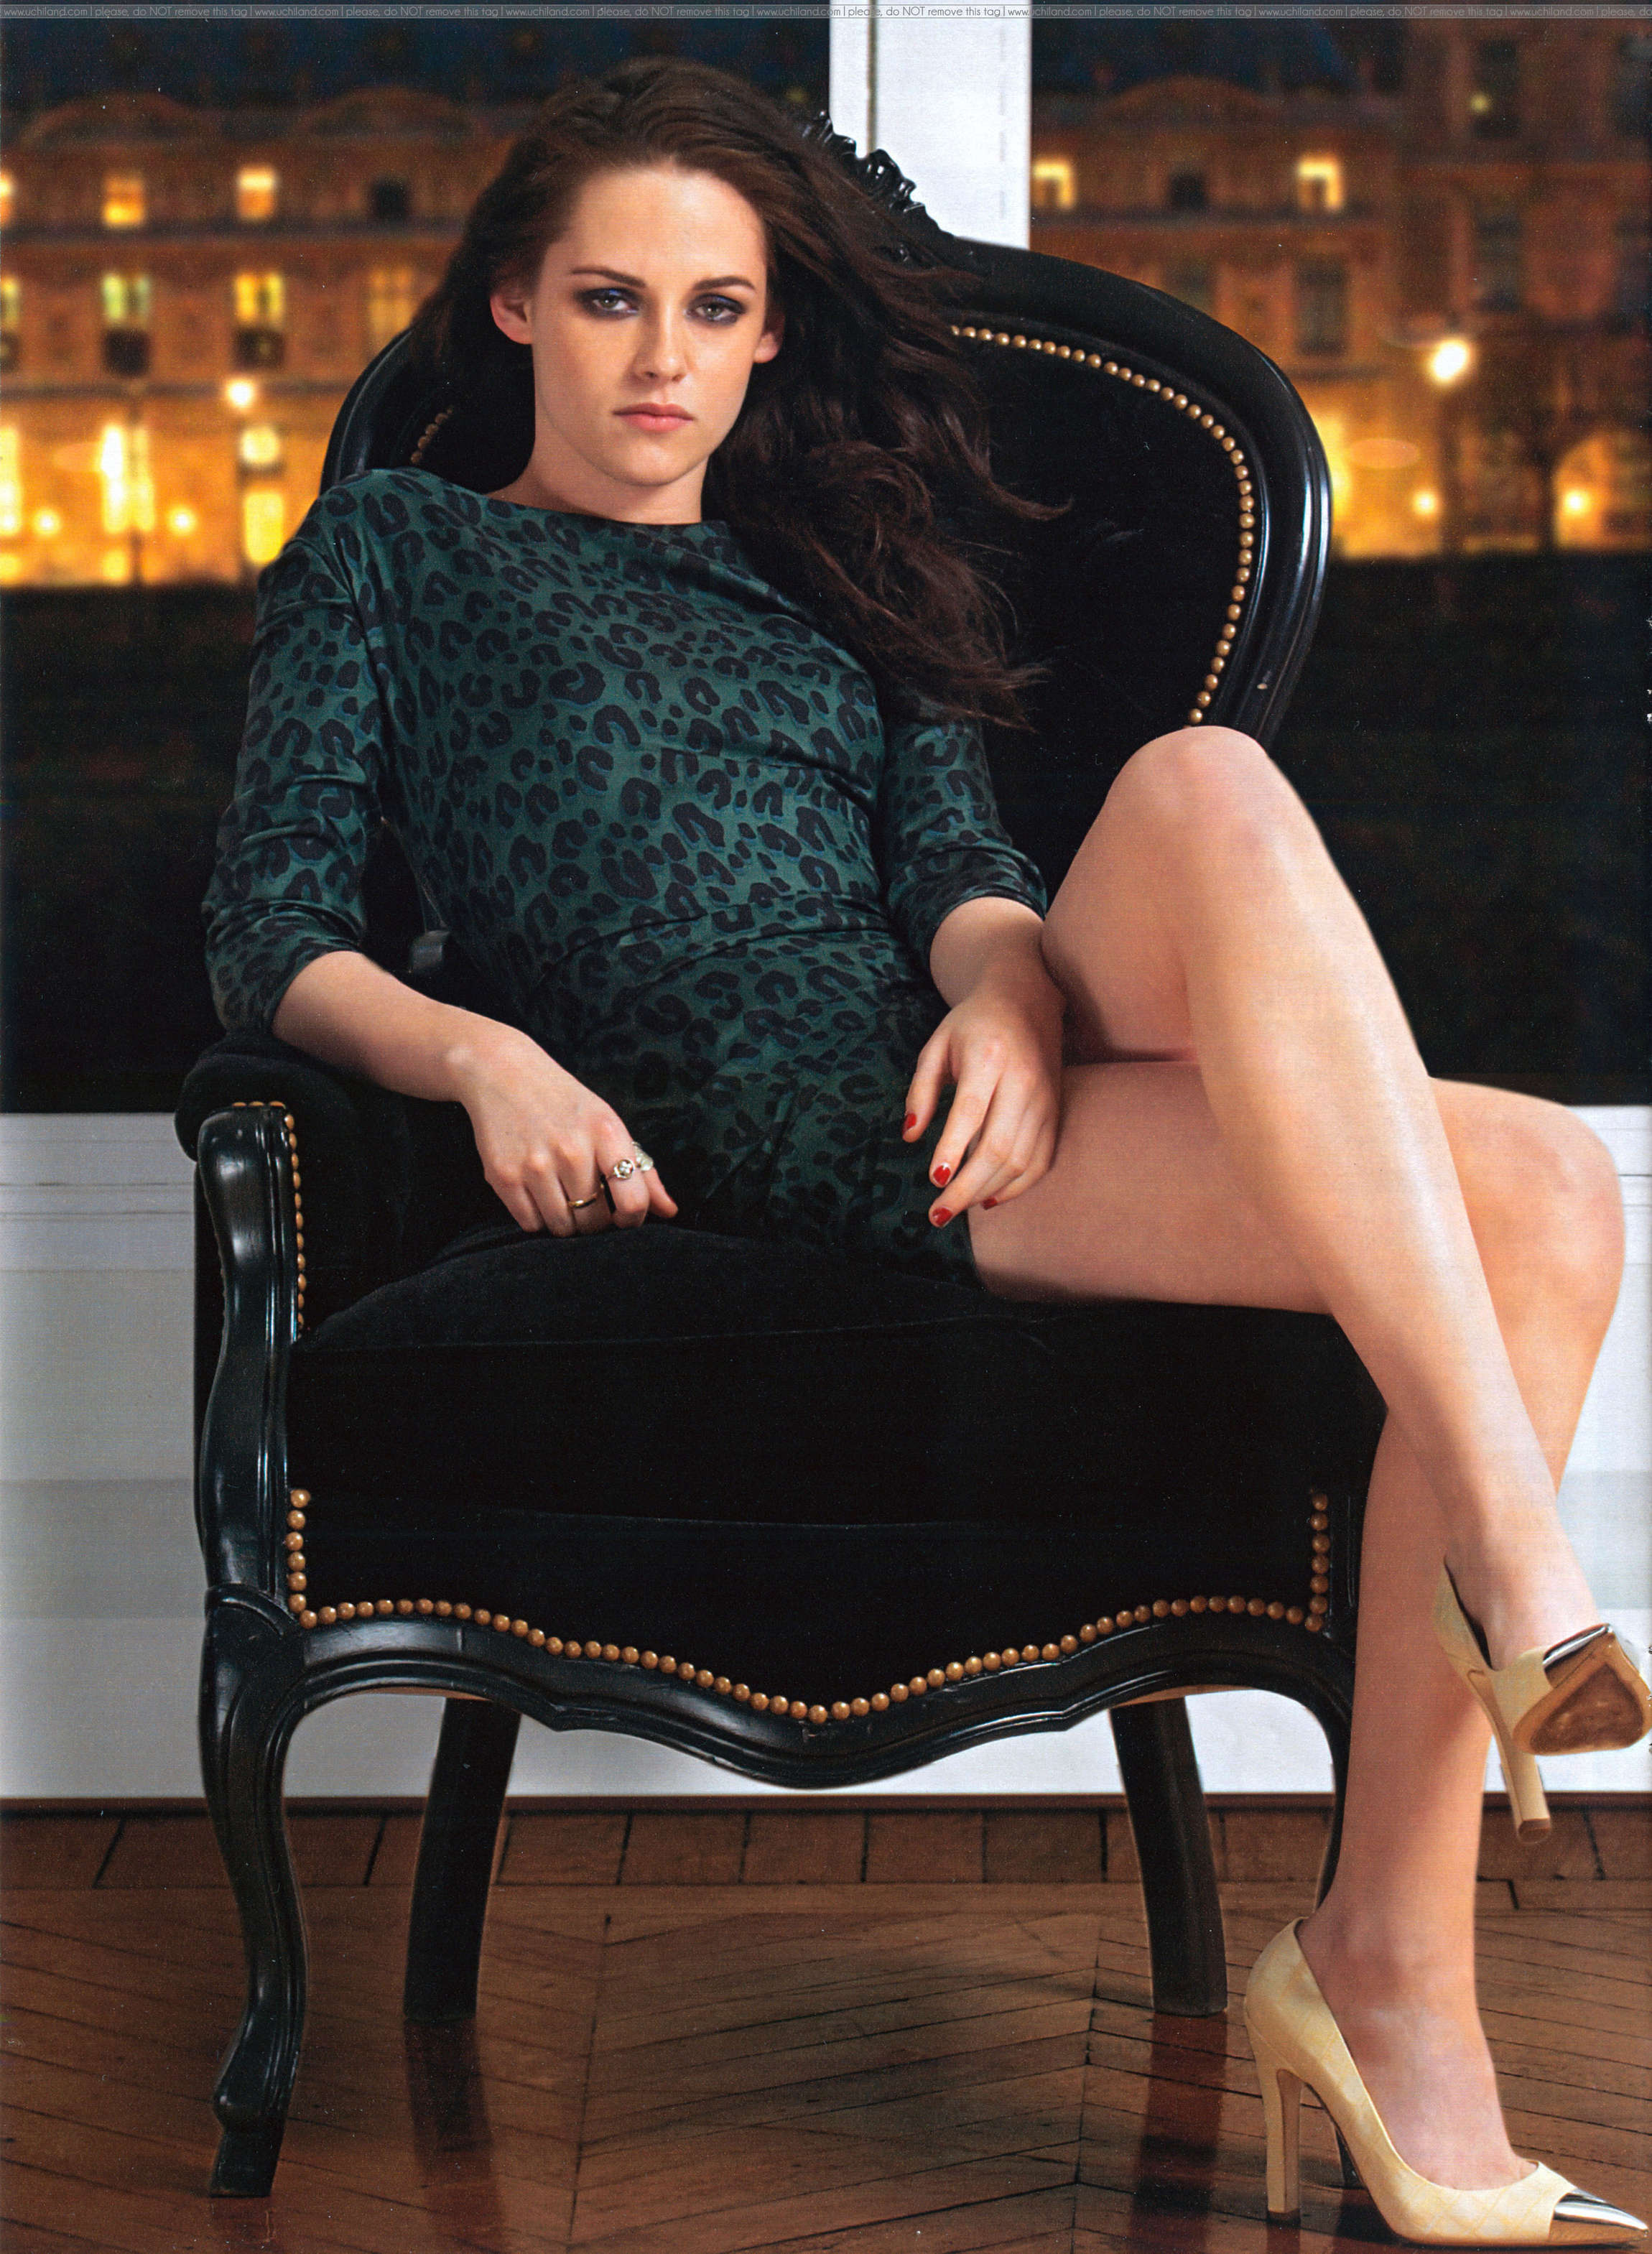 Download this Kristen Stewart Showing Sexy Legs Hola Magazine Full Size picture